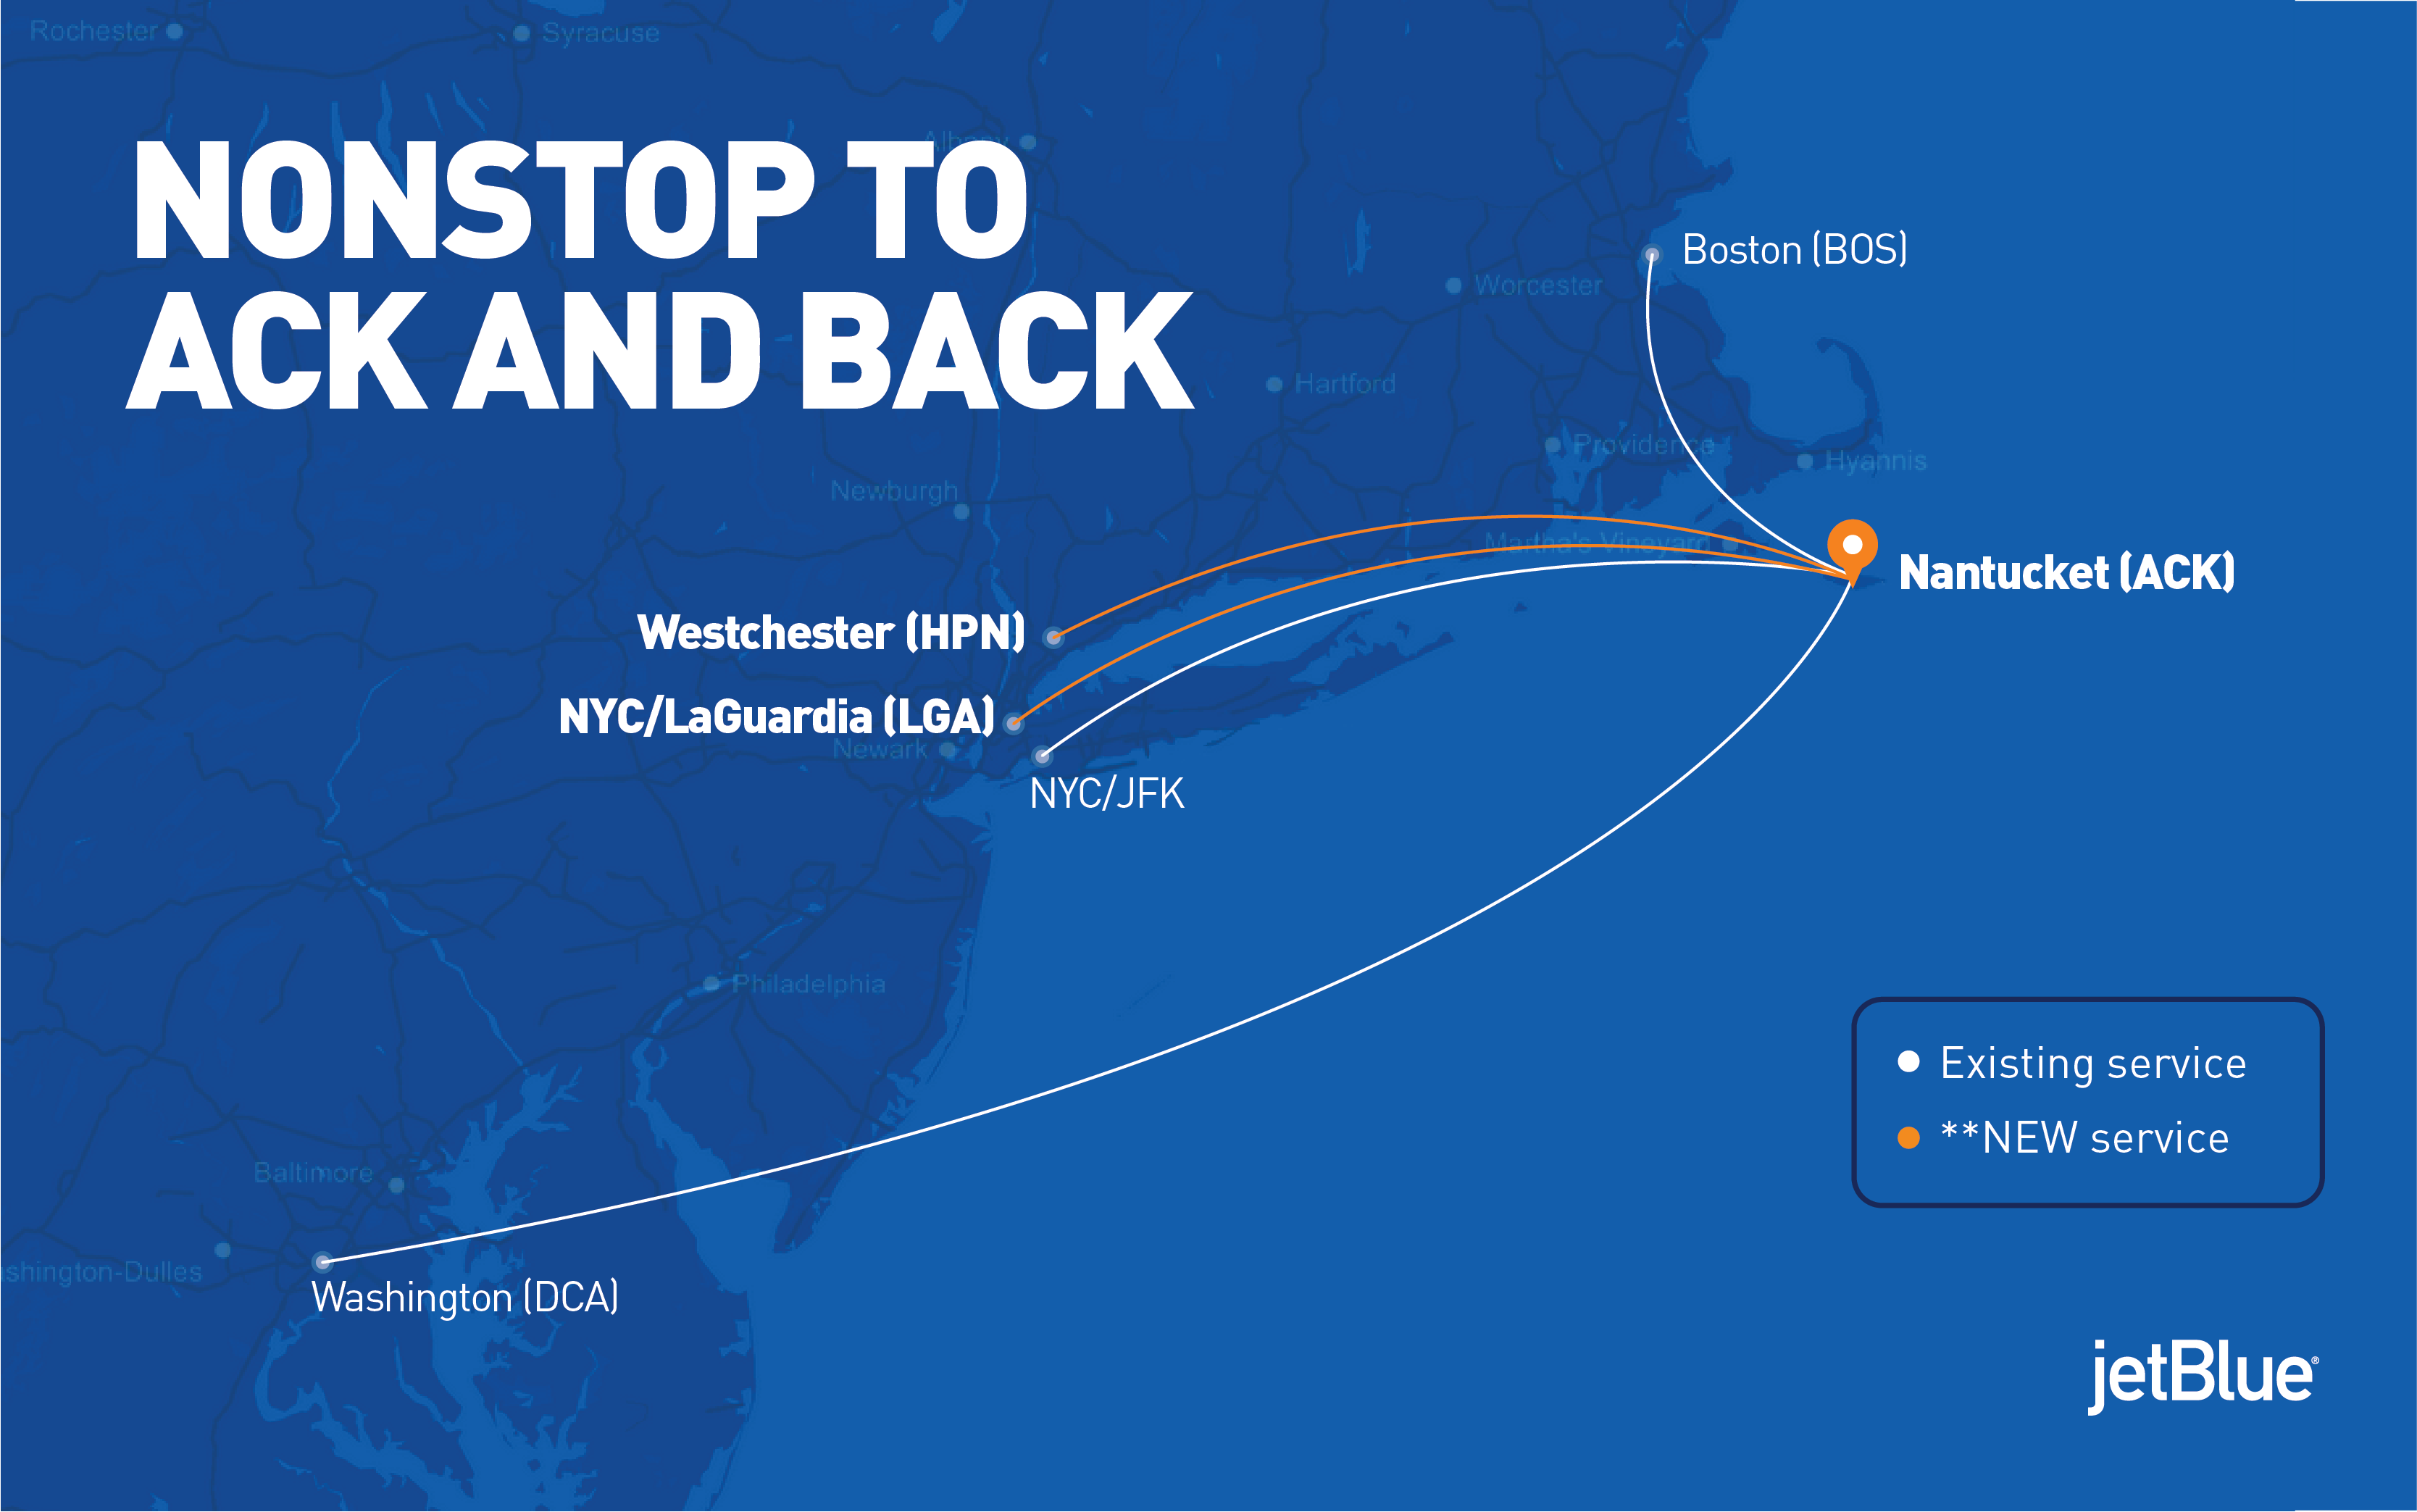 JetBlue | Start Planning for Summer Now with More JetBlue ... on